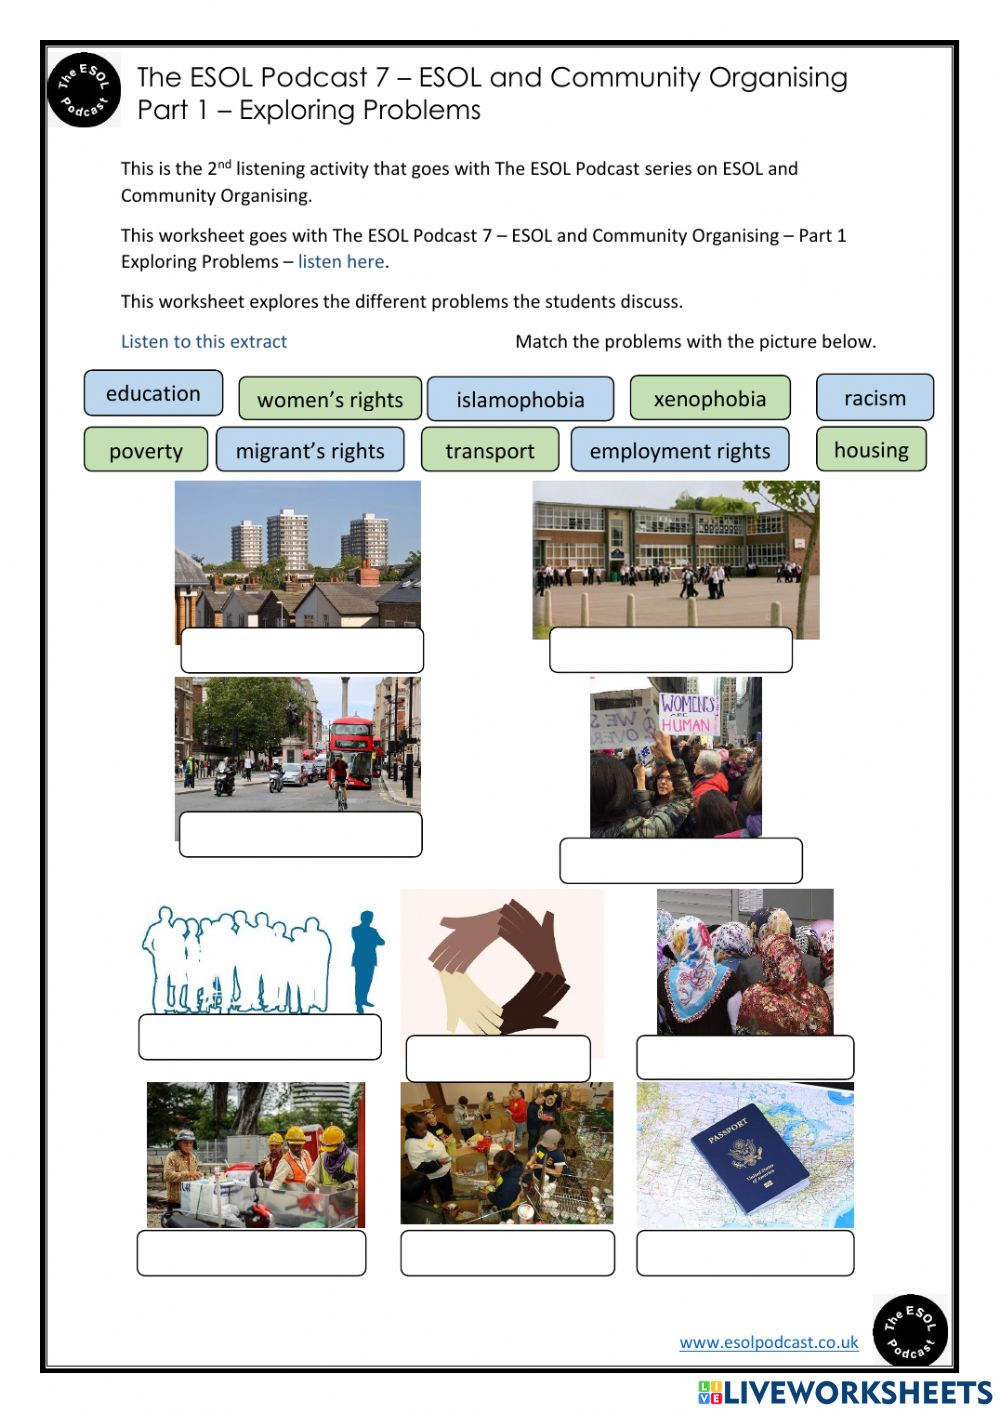 hight resolution of The ESOL Podcast 7 - ESOL and Community Organising - Part 1 - Exploring  Problems - Worksheet 2 worksheet